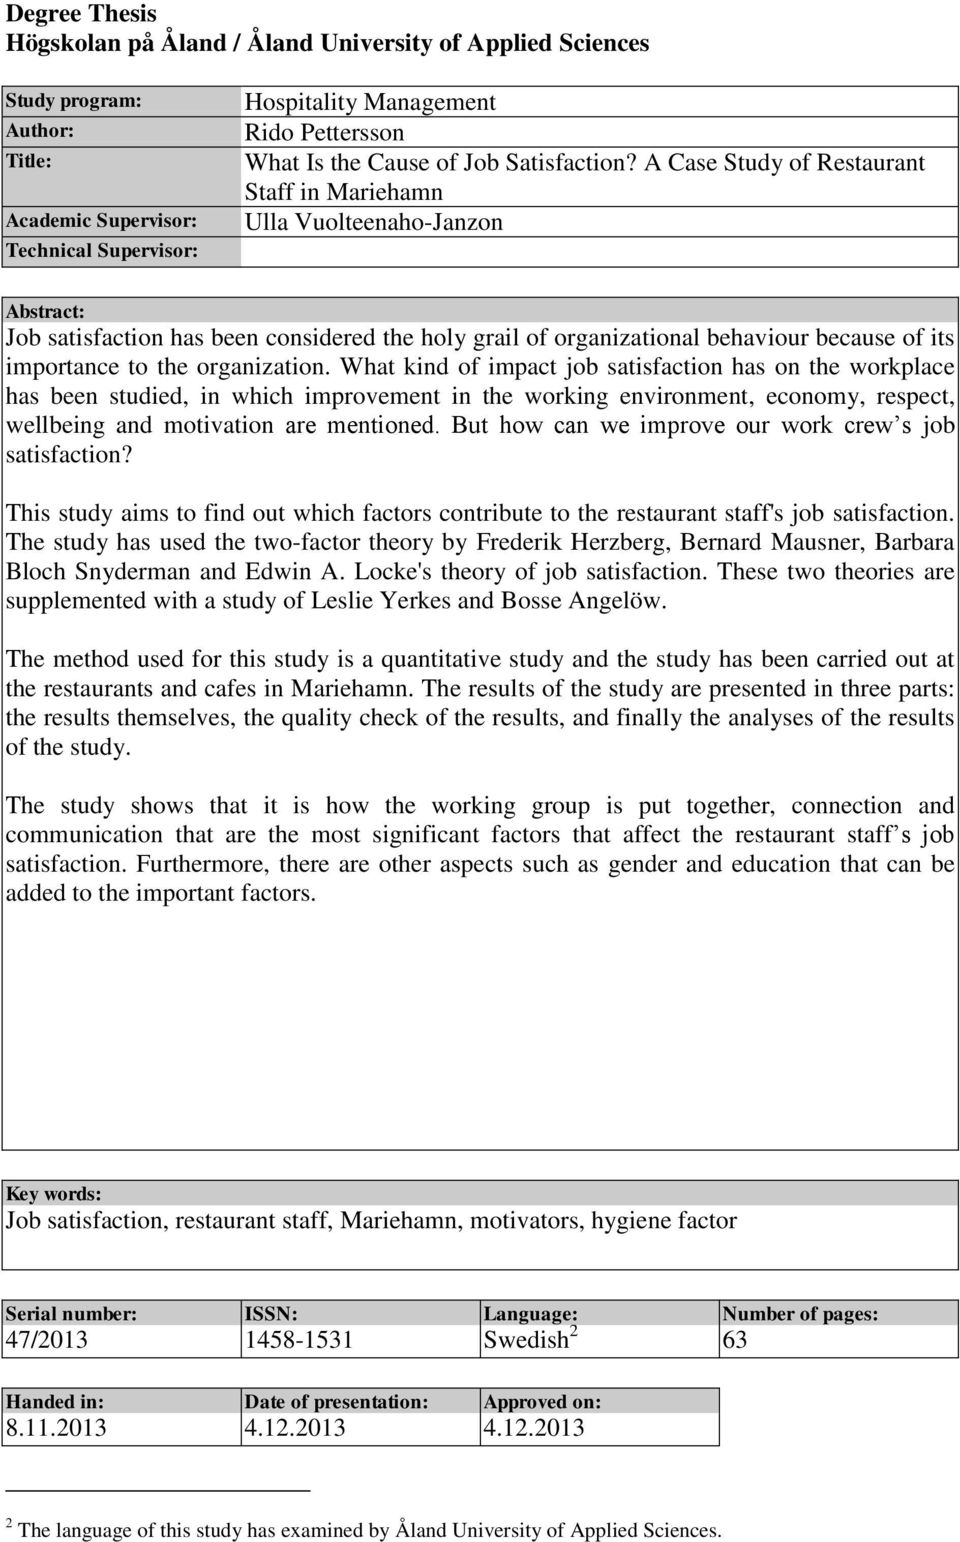 A Case Study of Restaurant Staff in Mariehamn Ulla Vuolteenaho-Janzon Abstract: Job satisfaction has been considered the holy grail of organizational behaviour because of its importance to the